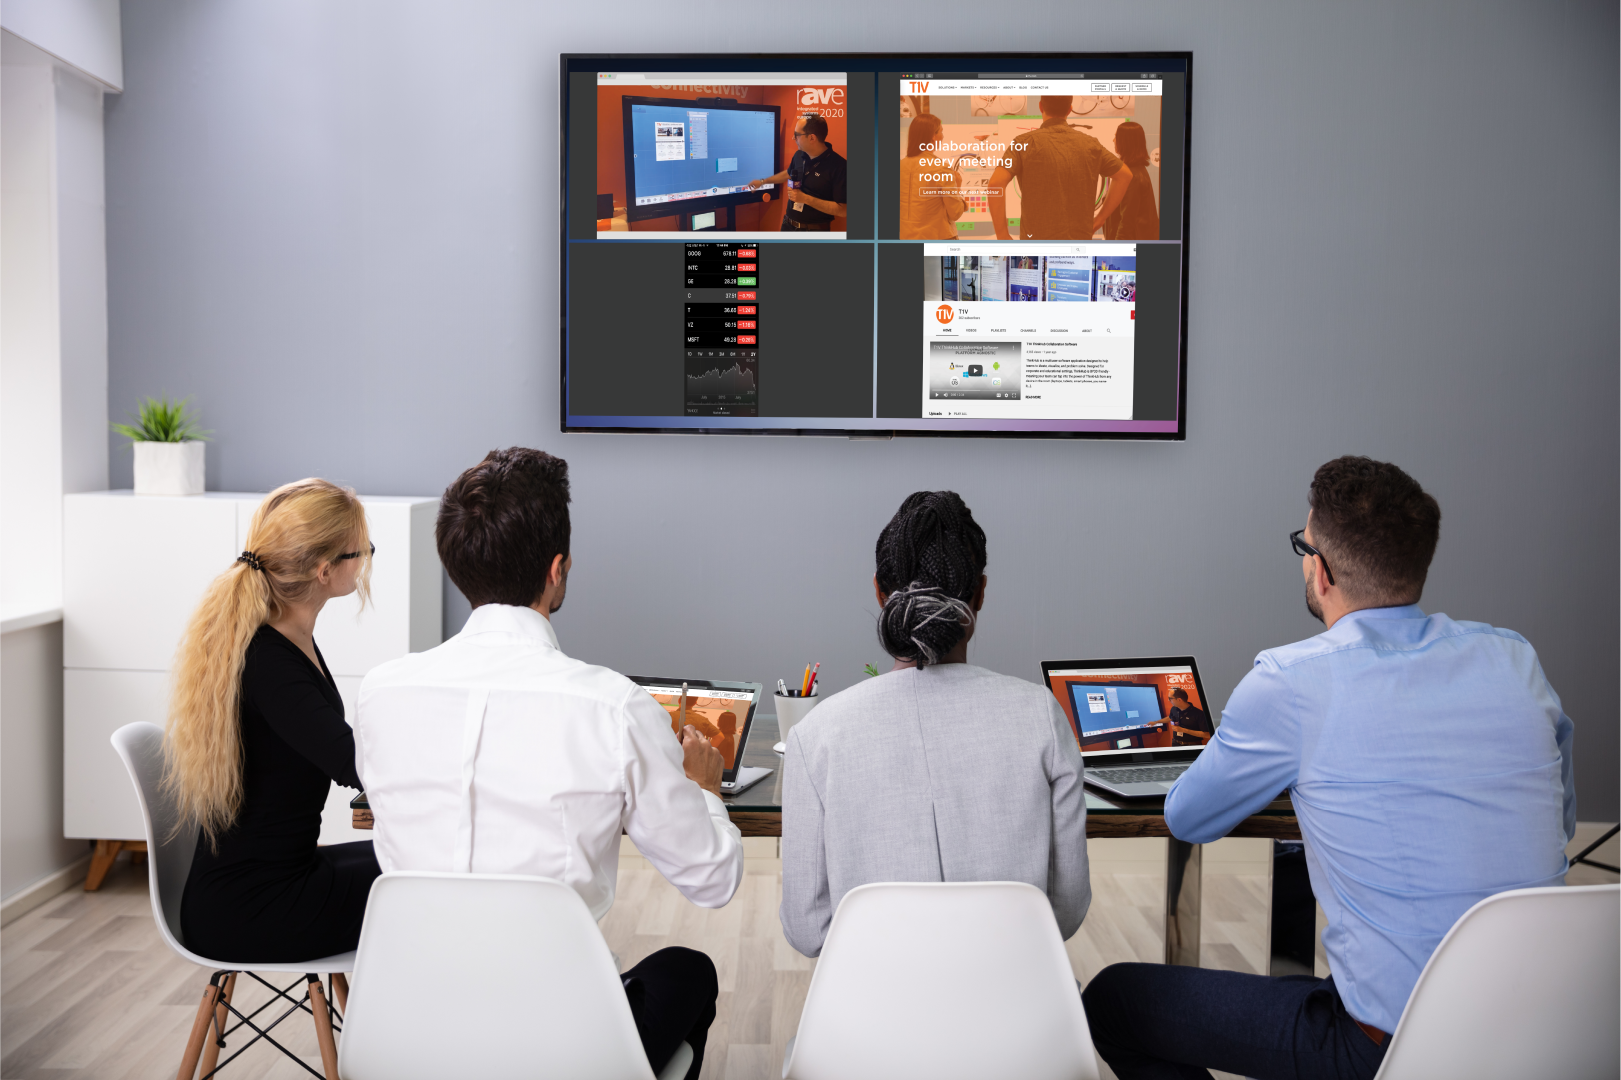 T1V-Hub-wireless-screen-sharing-device-for-collaboration-team-meetings